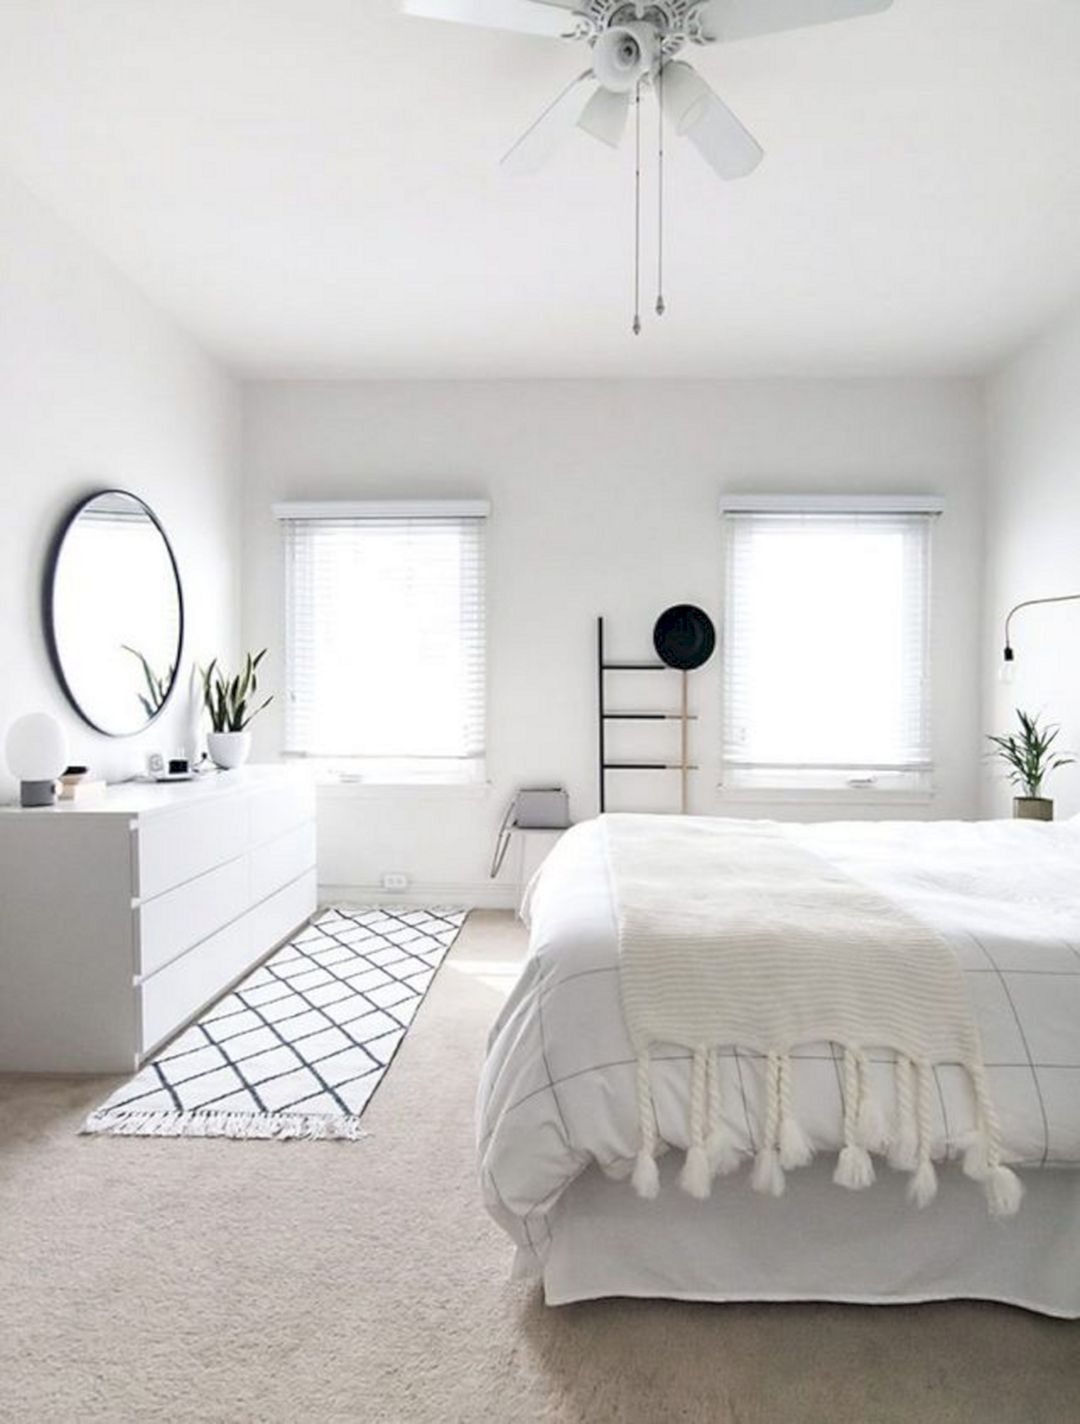 Aesthetic Room Decorations (Aesthetic Room Decorations ... on Room Decor Ideas De Cuartos Aesthetic id=32138